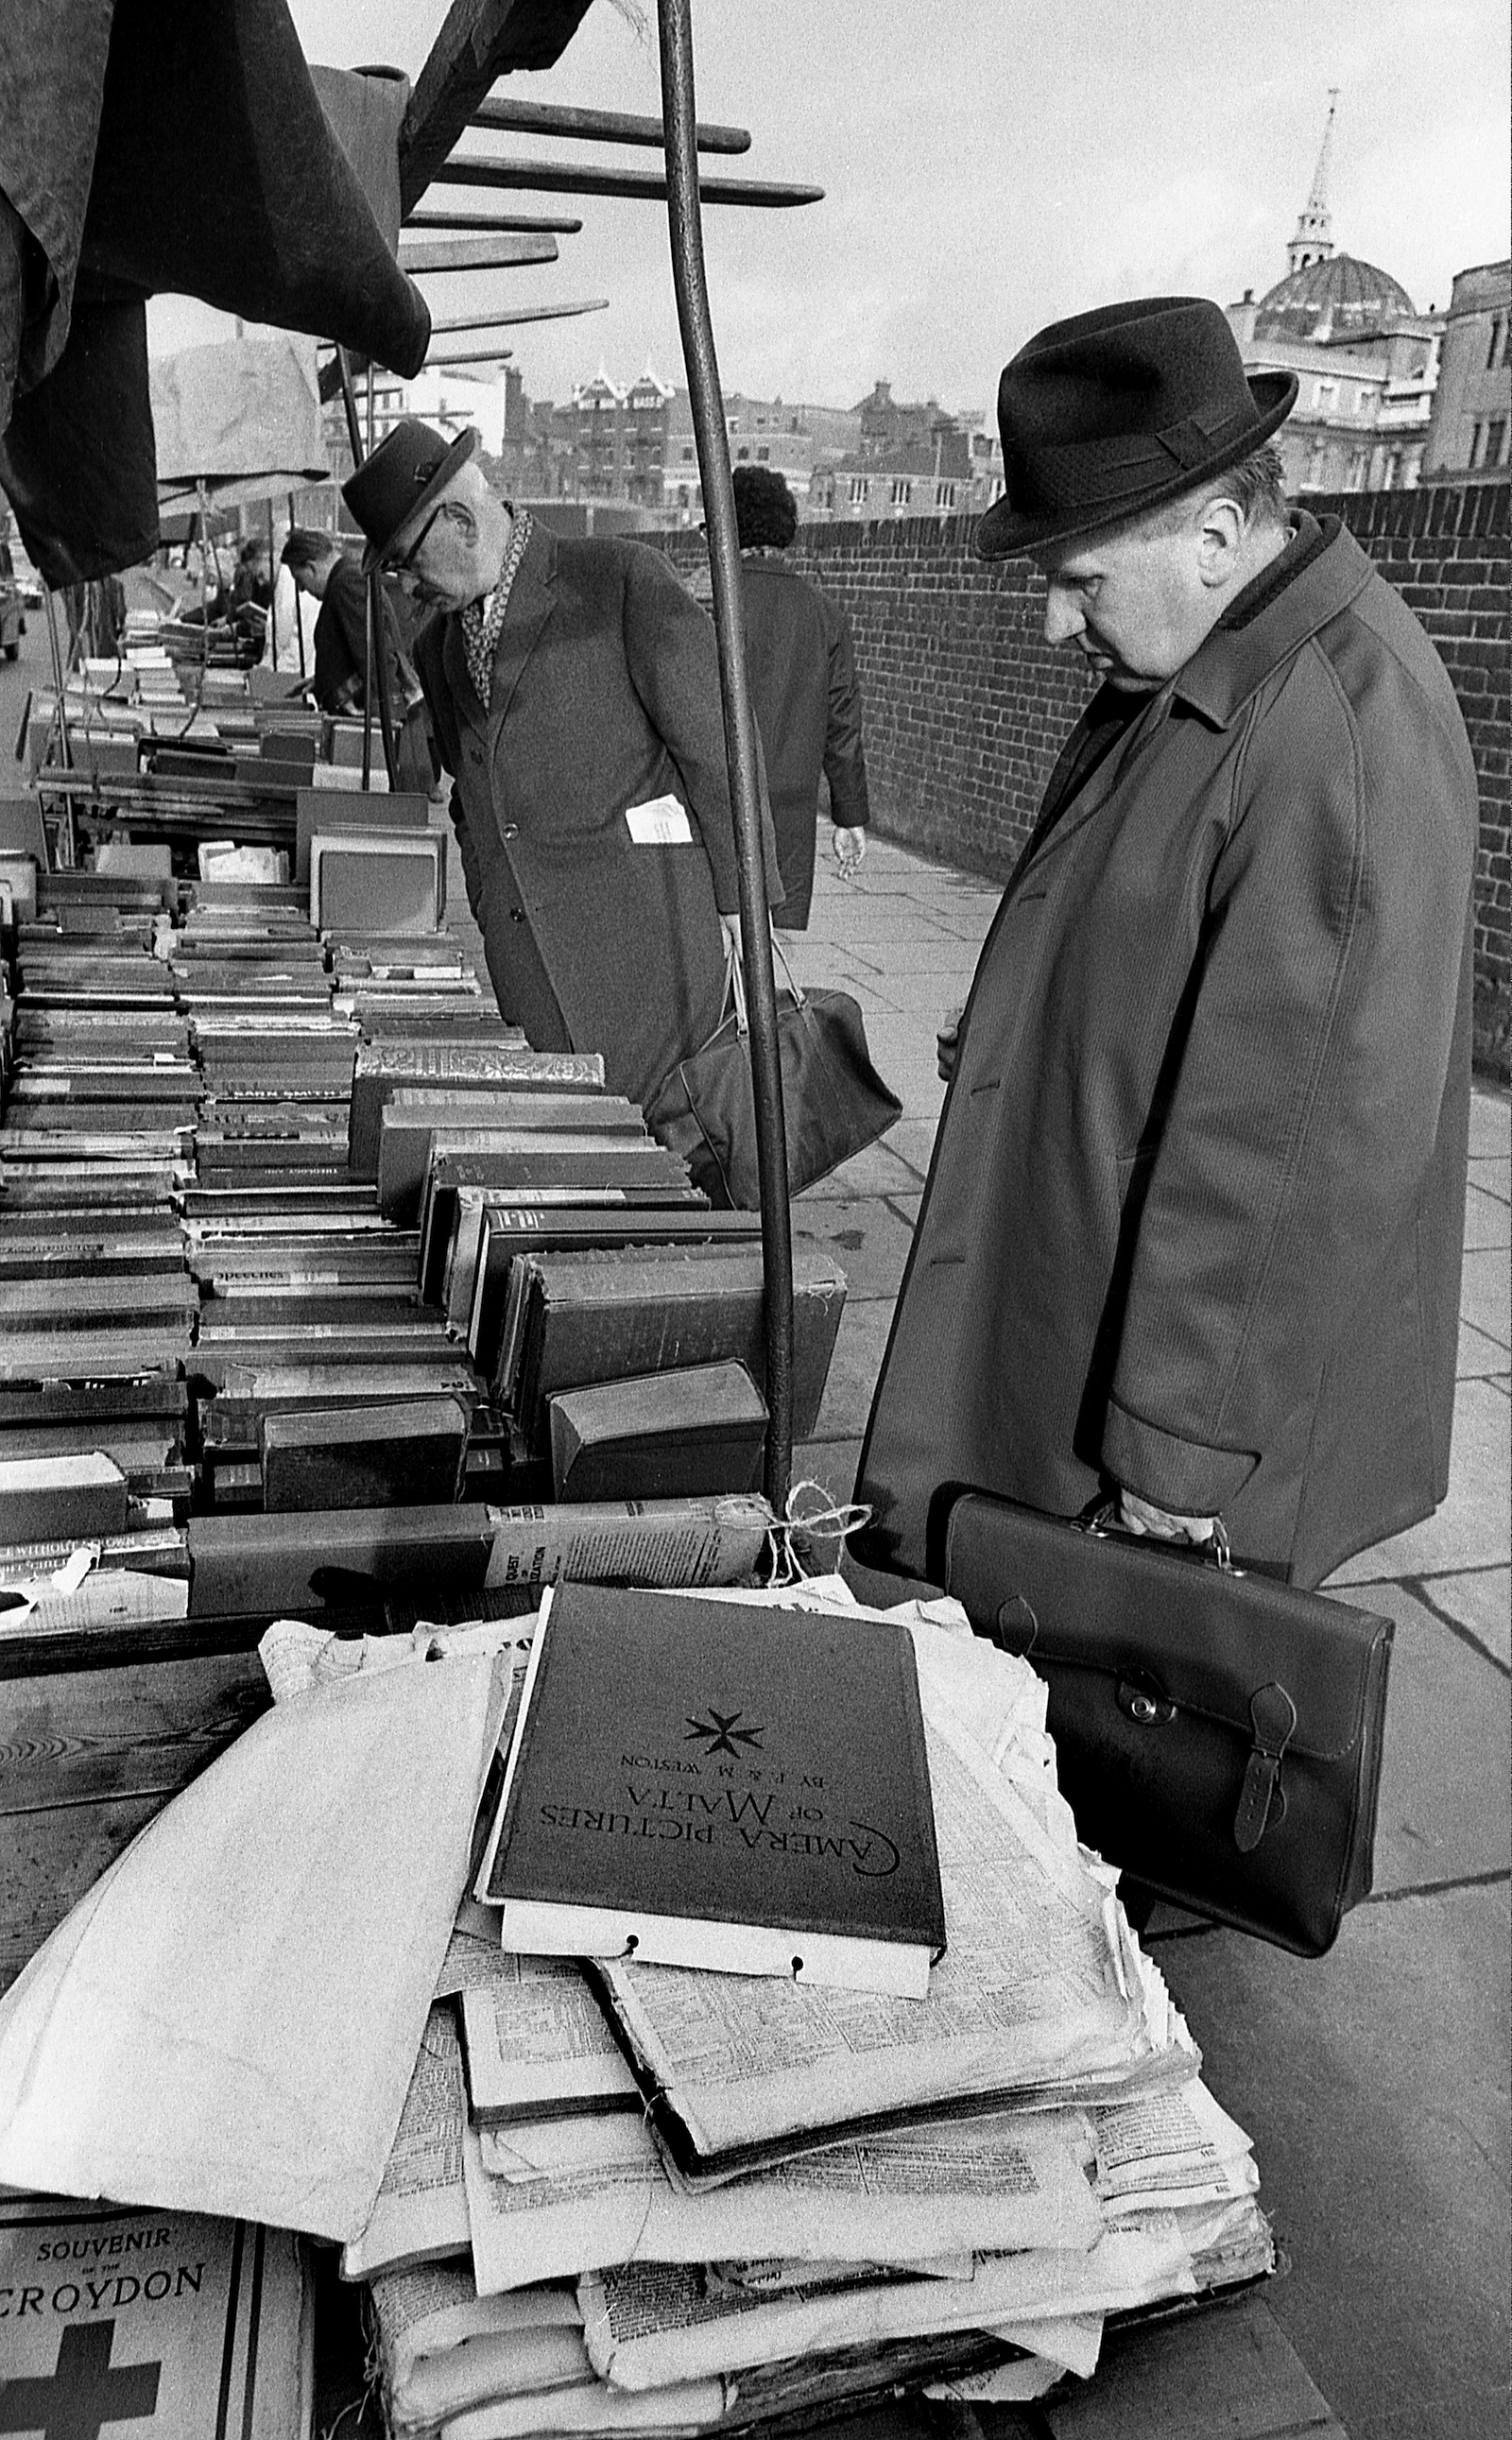 Bookstalls Farringdon Road Farringdon Road London 1966.